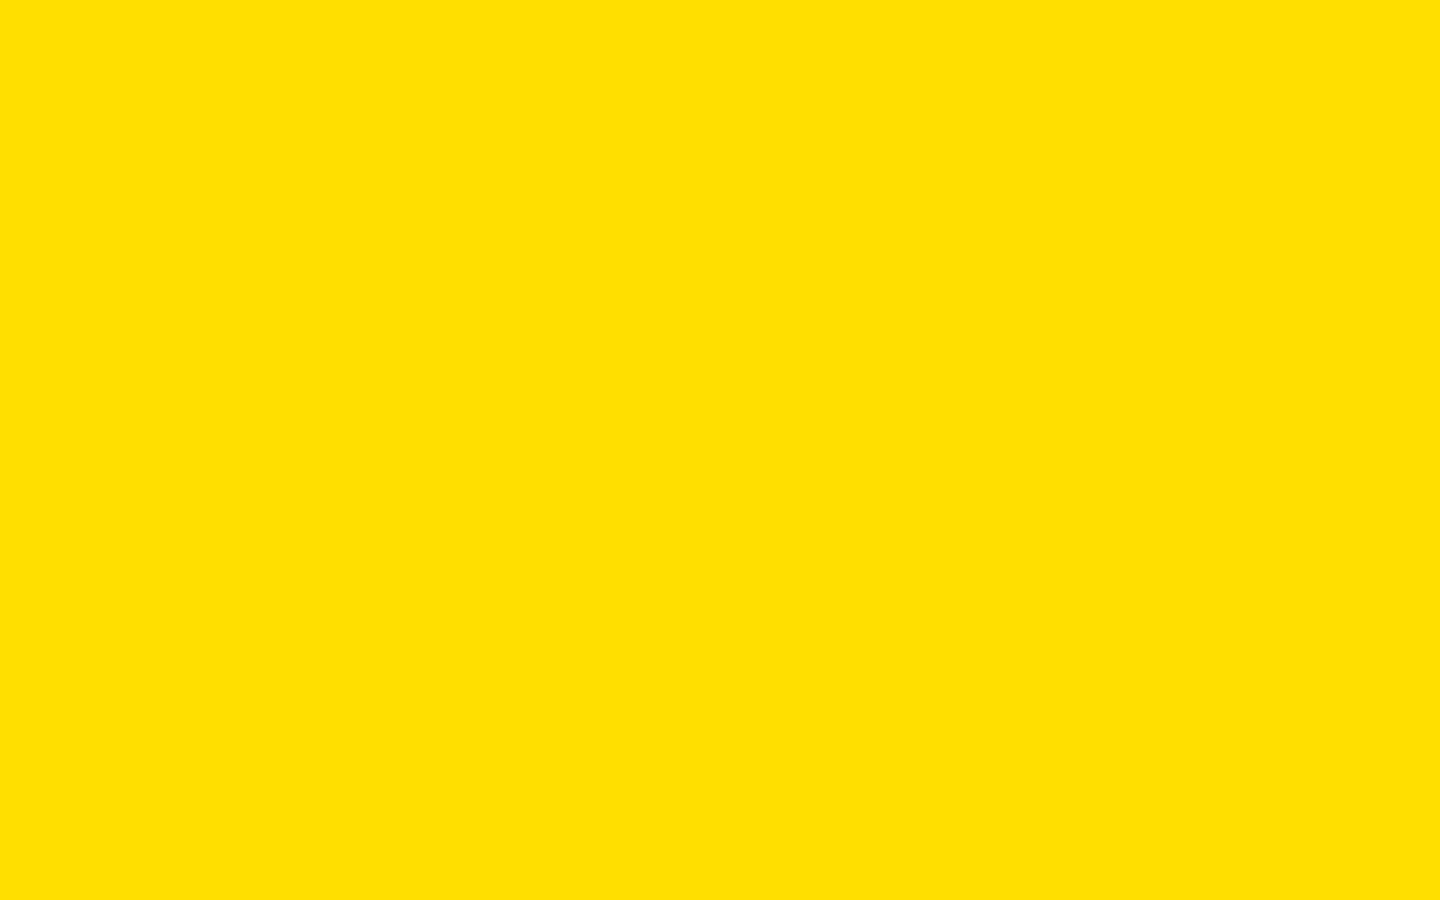 1440x900 Yellow Pantone Solid Color Background